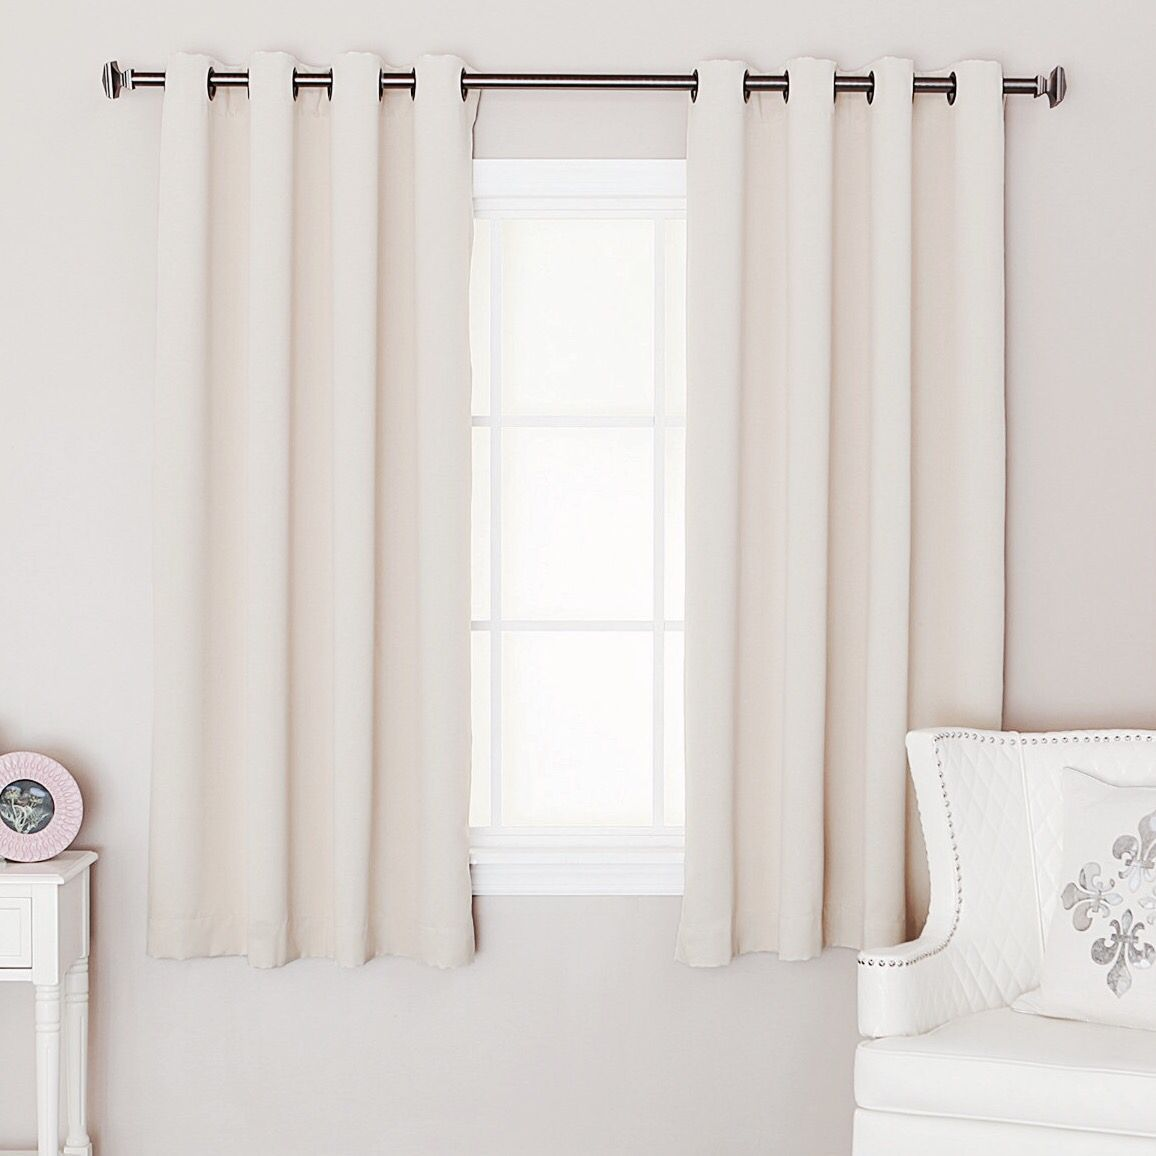 15 Modern Minimalist Curtains Window Curtains Bedroom Small